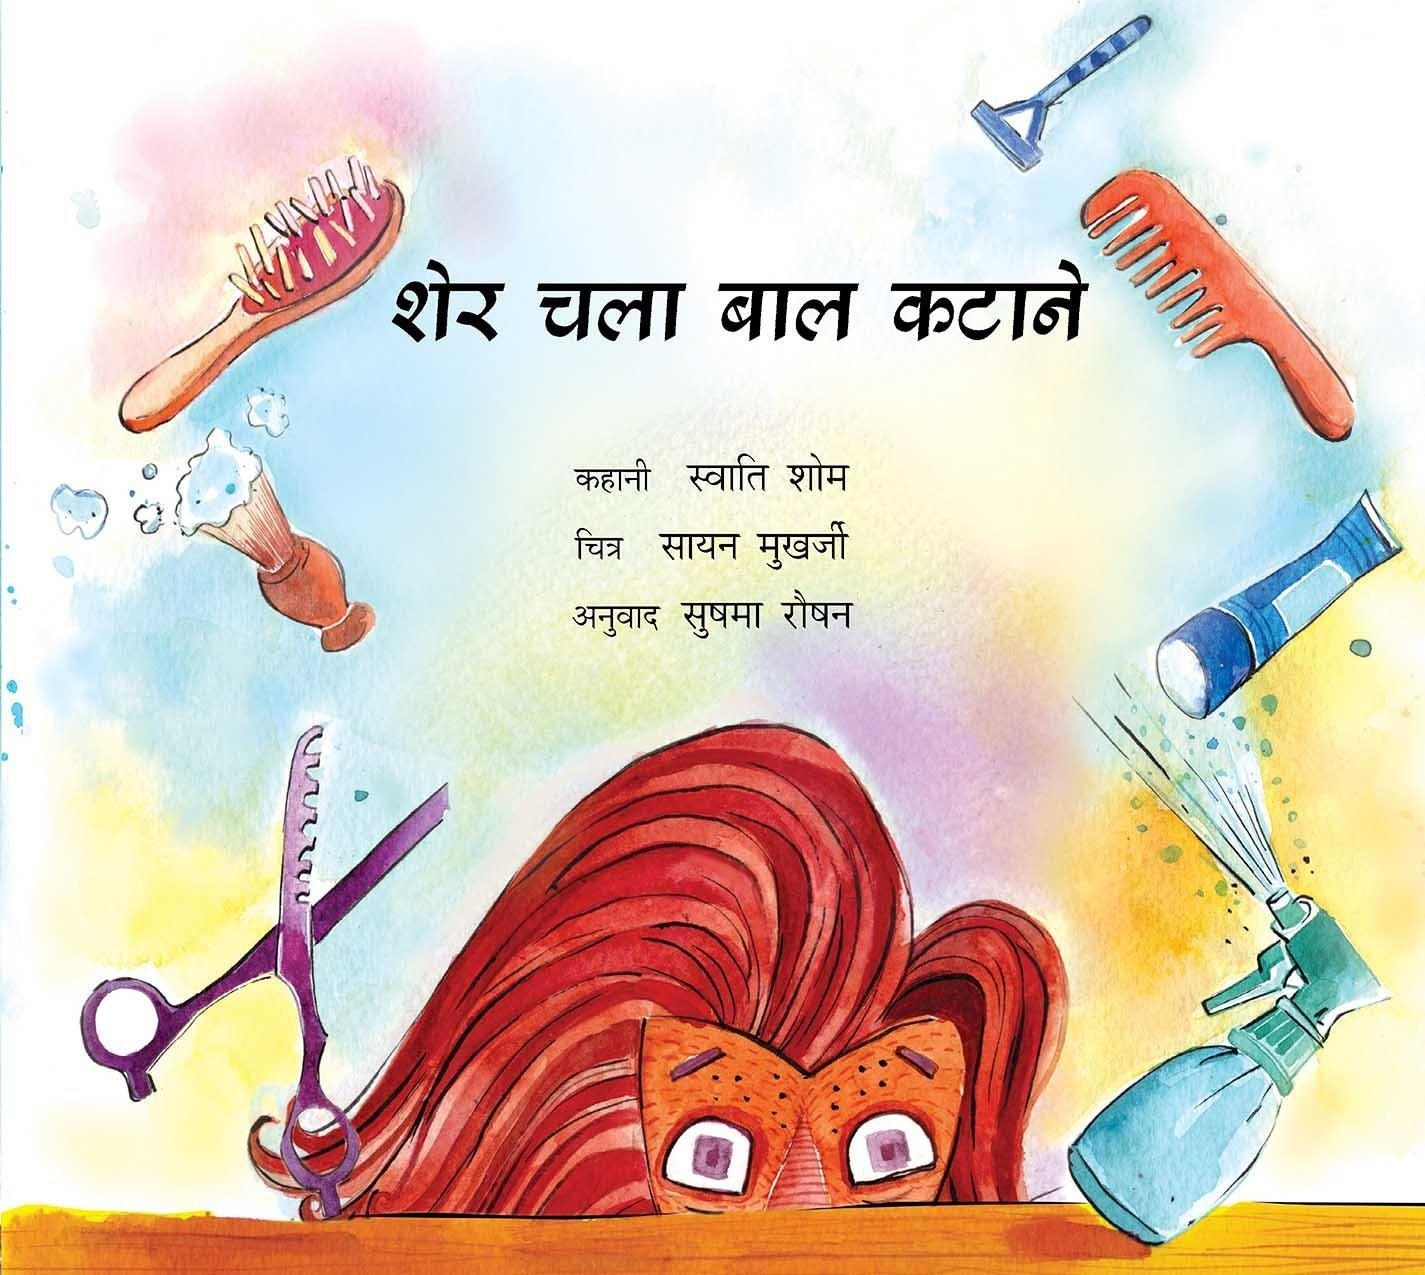 Lion Goes For A Haircut/Sher Chala Baal Kataane (Hindi) Picture Books Age_4+ ISBN: 9789350467404